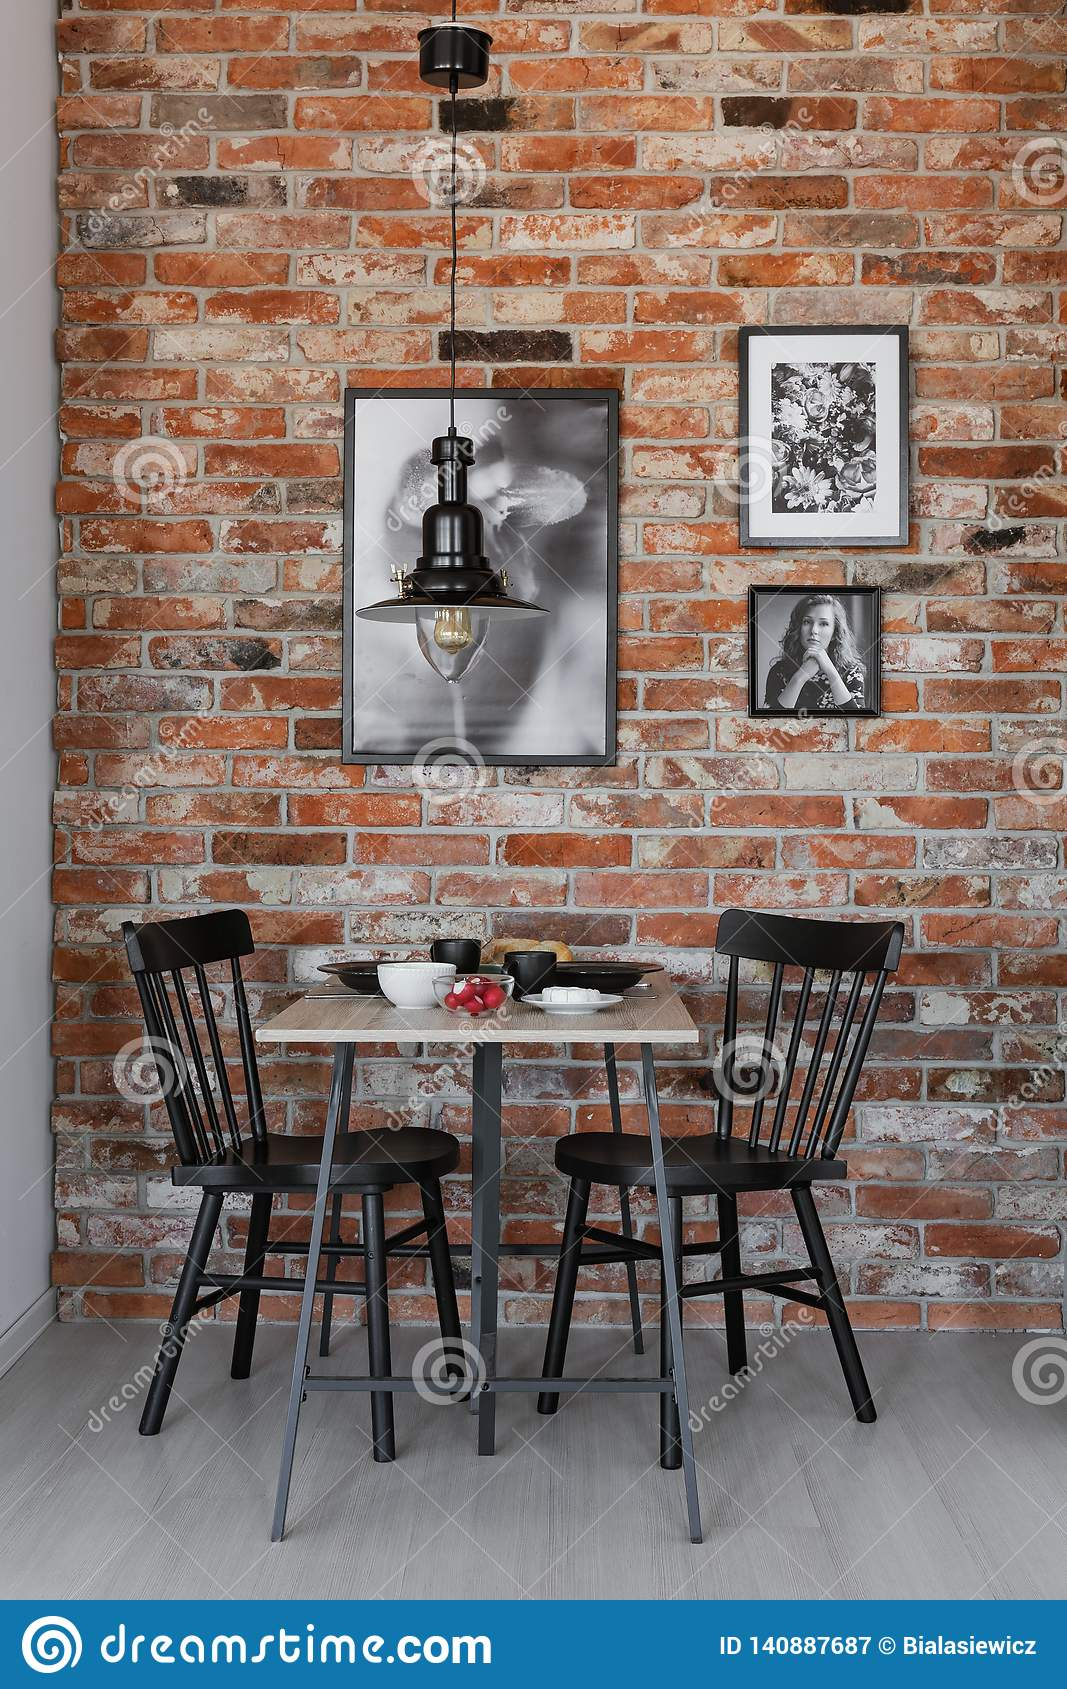 314 Living Room White Brick Wall Chairs Photos Free Royalty Free Stock Photos From Dreamstime